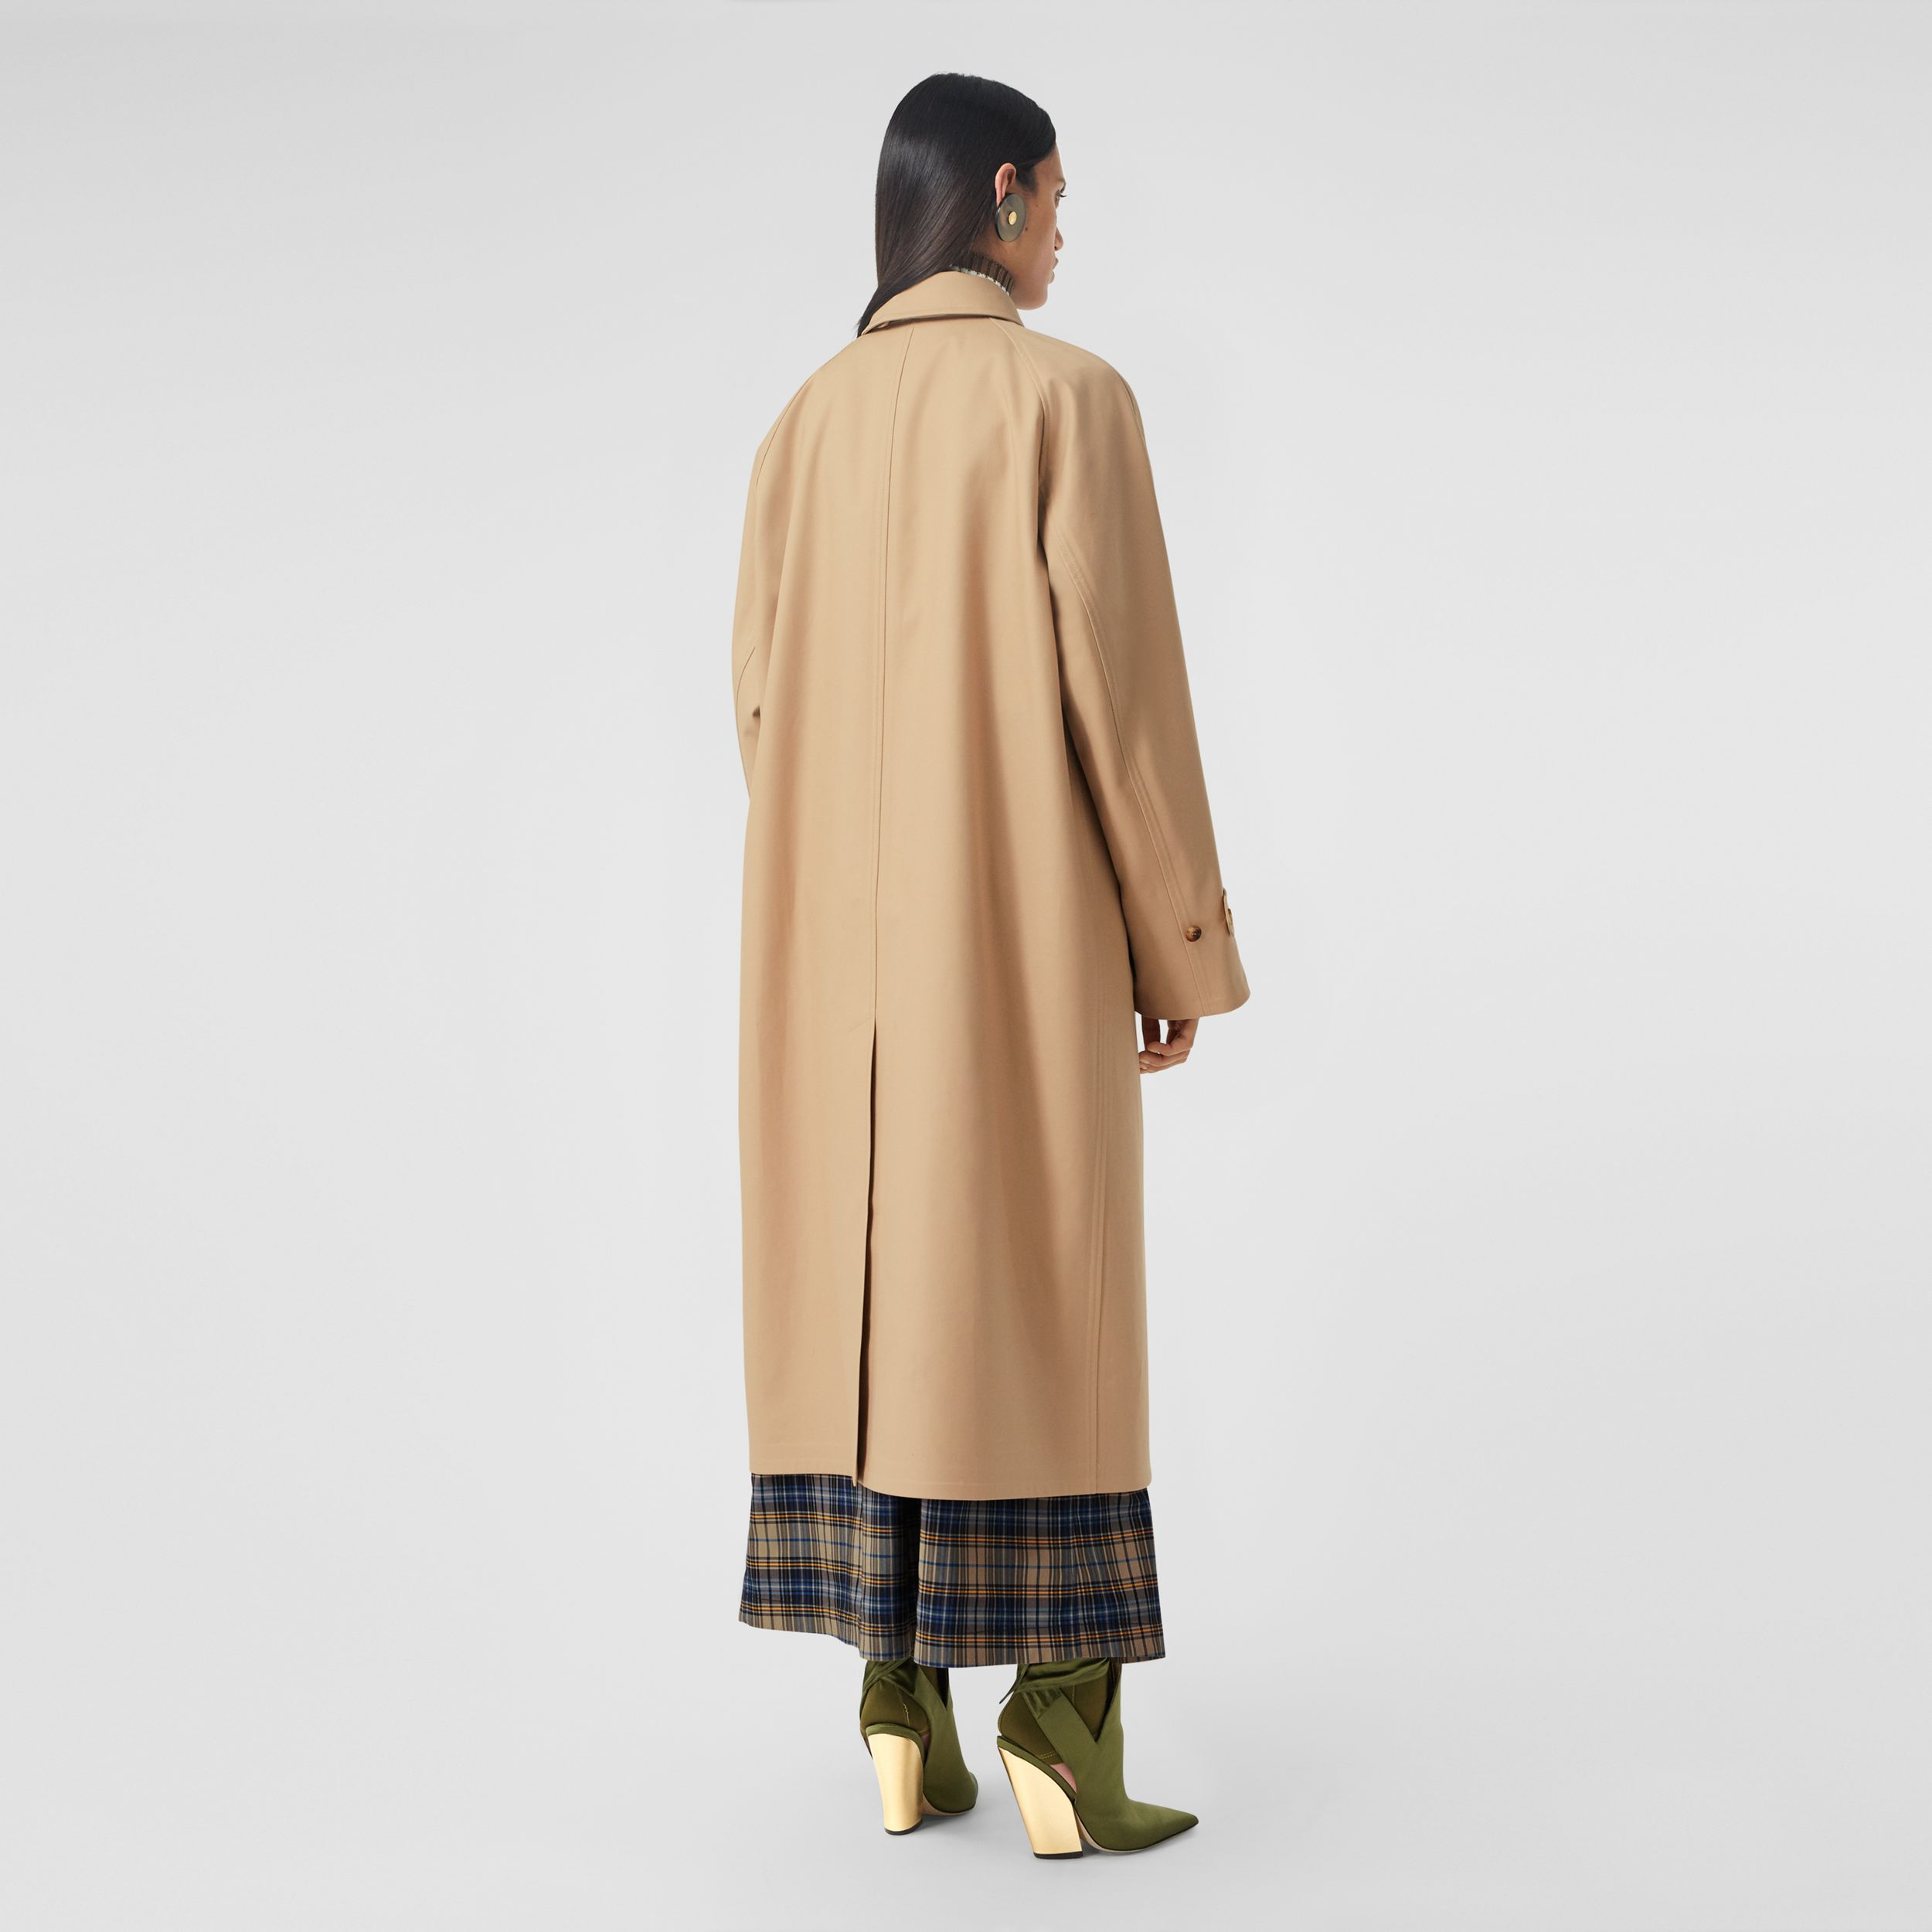 Car coat ricostruito in gabardine di cotone (Fulvo Tenue) - Donna | Burberry - 3